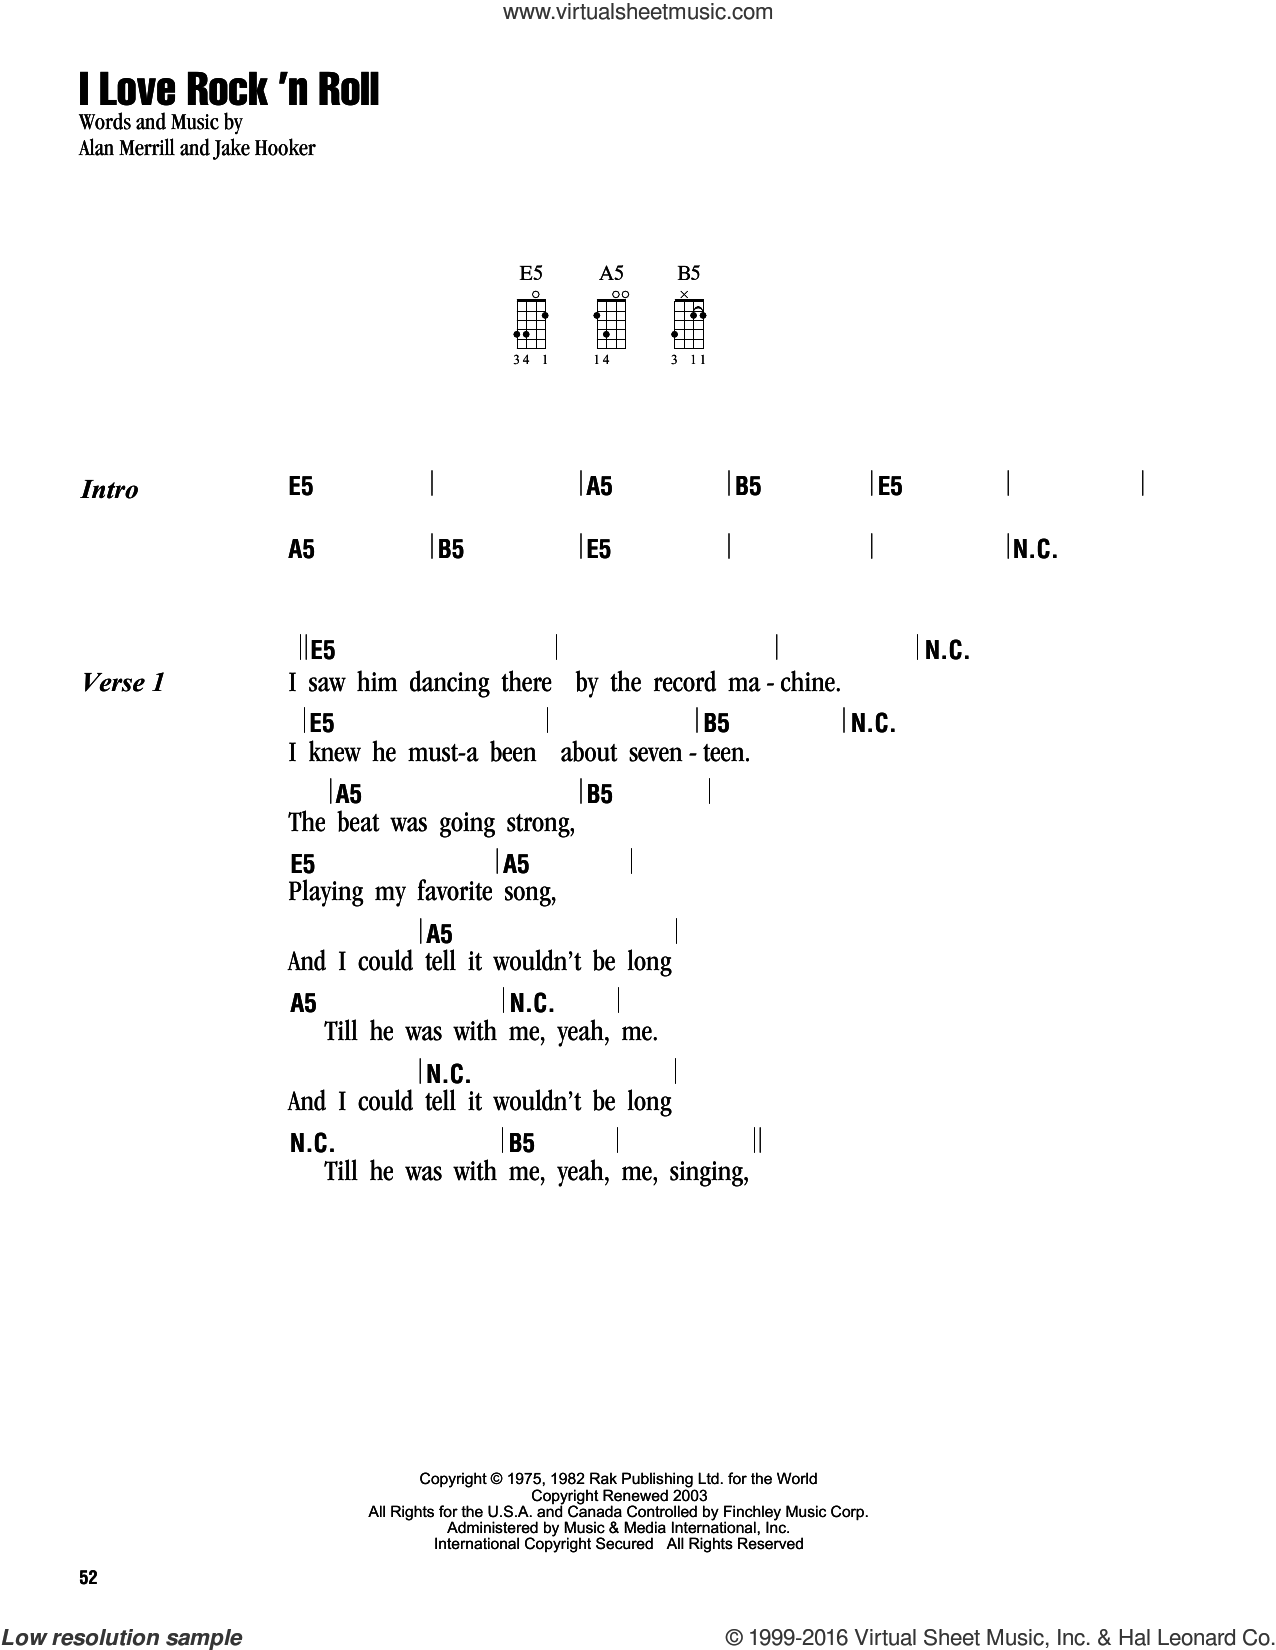 I Love Rock 'N Roll sheet music for ukulele (chords) by Jake Hooker and Joan Jett & The Blackhearts. Score Image Preview.